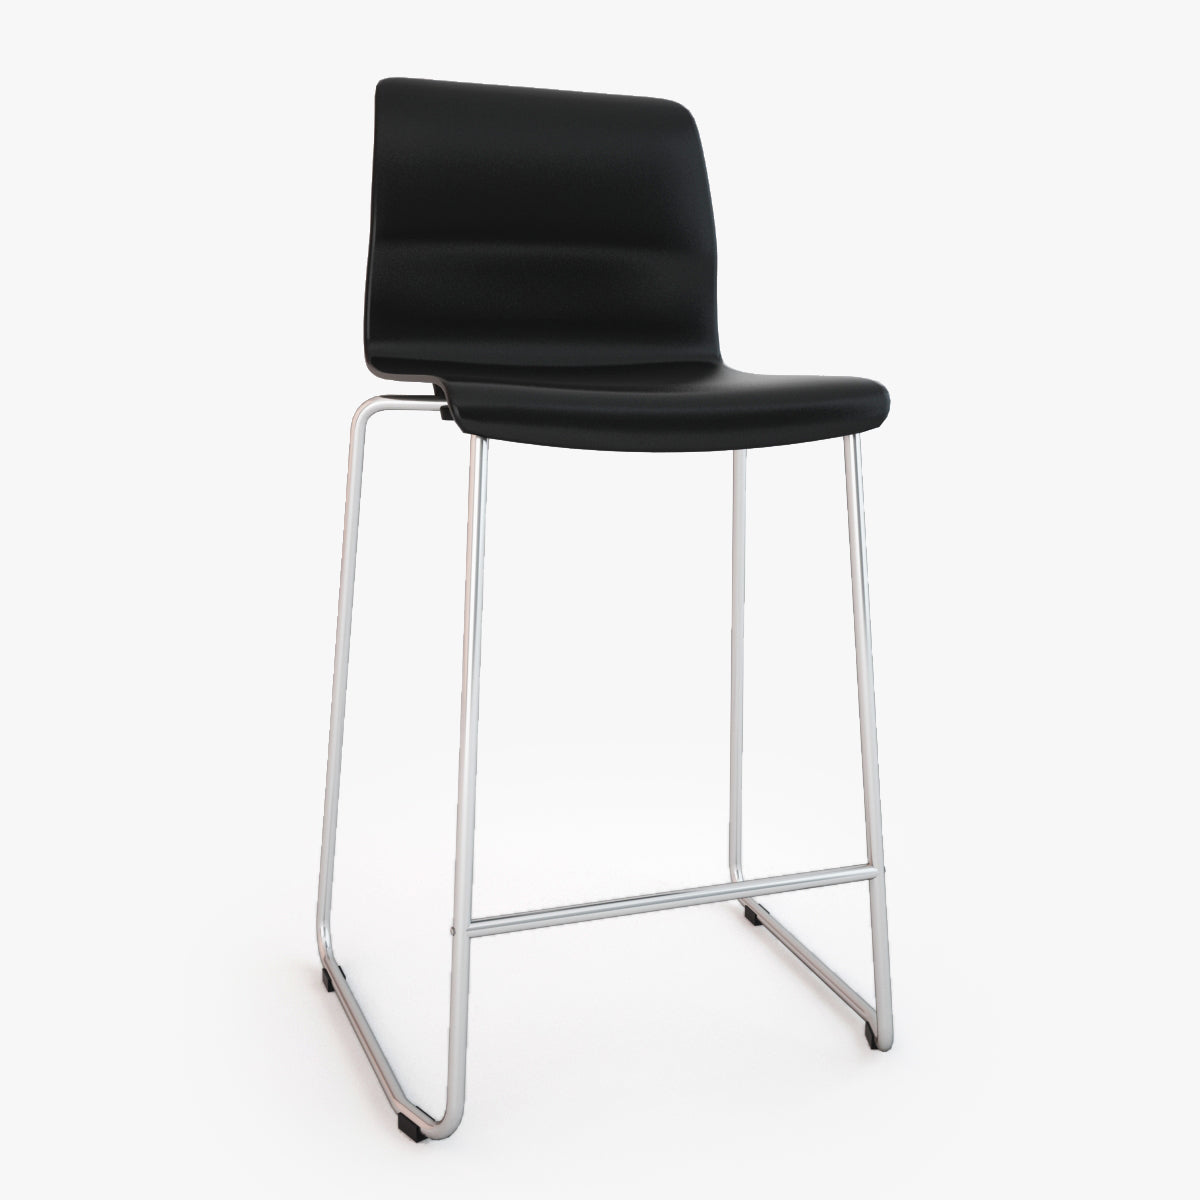 FREE IKEA Glenn Bar stool 3D Model